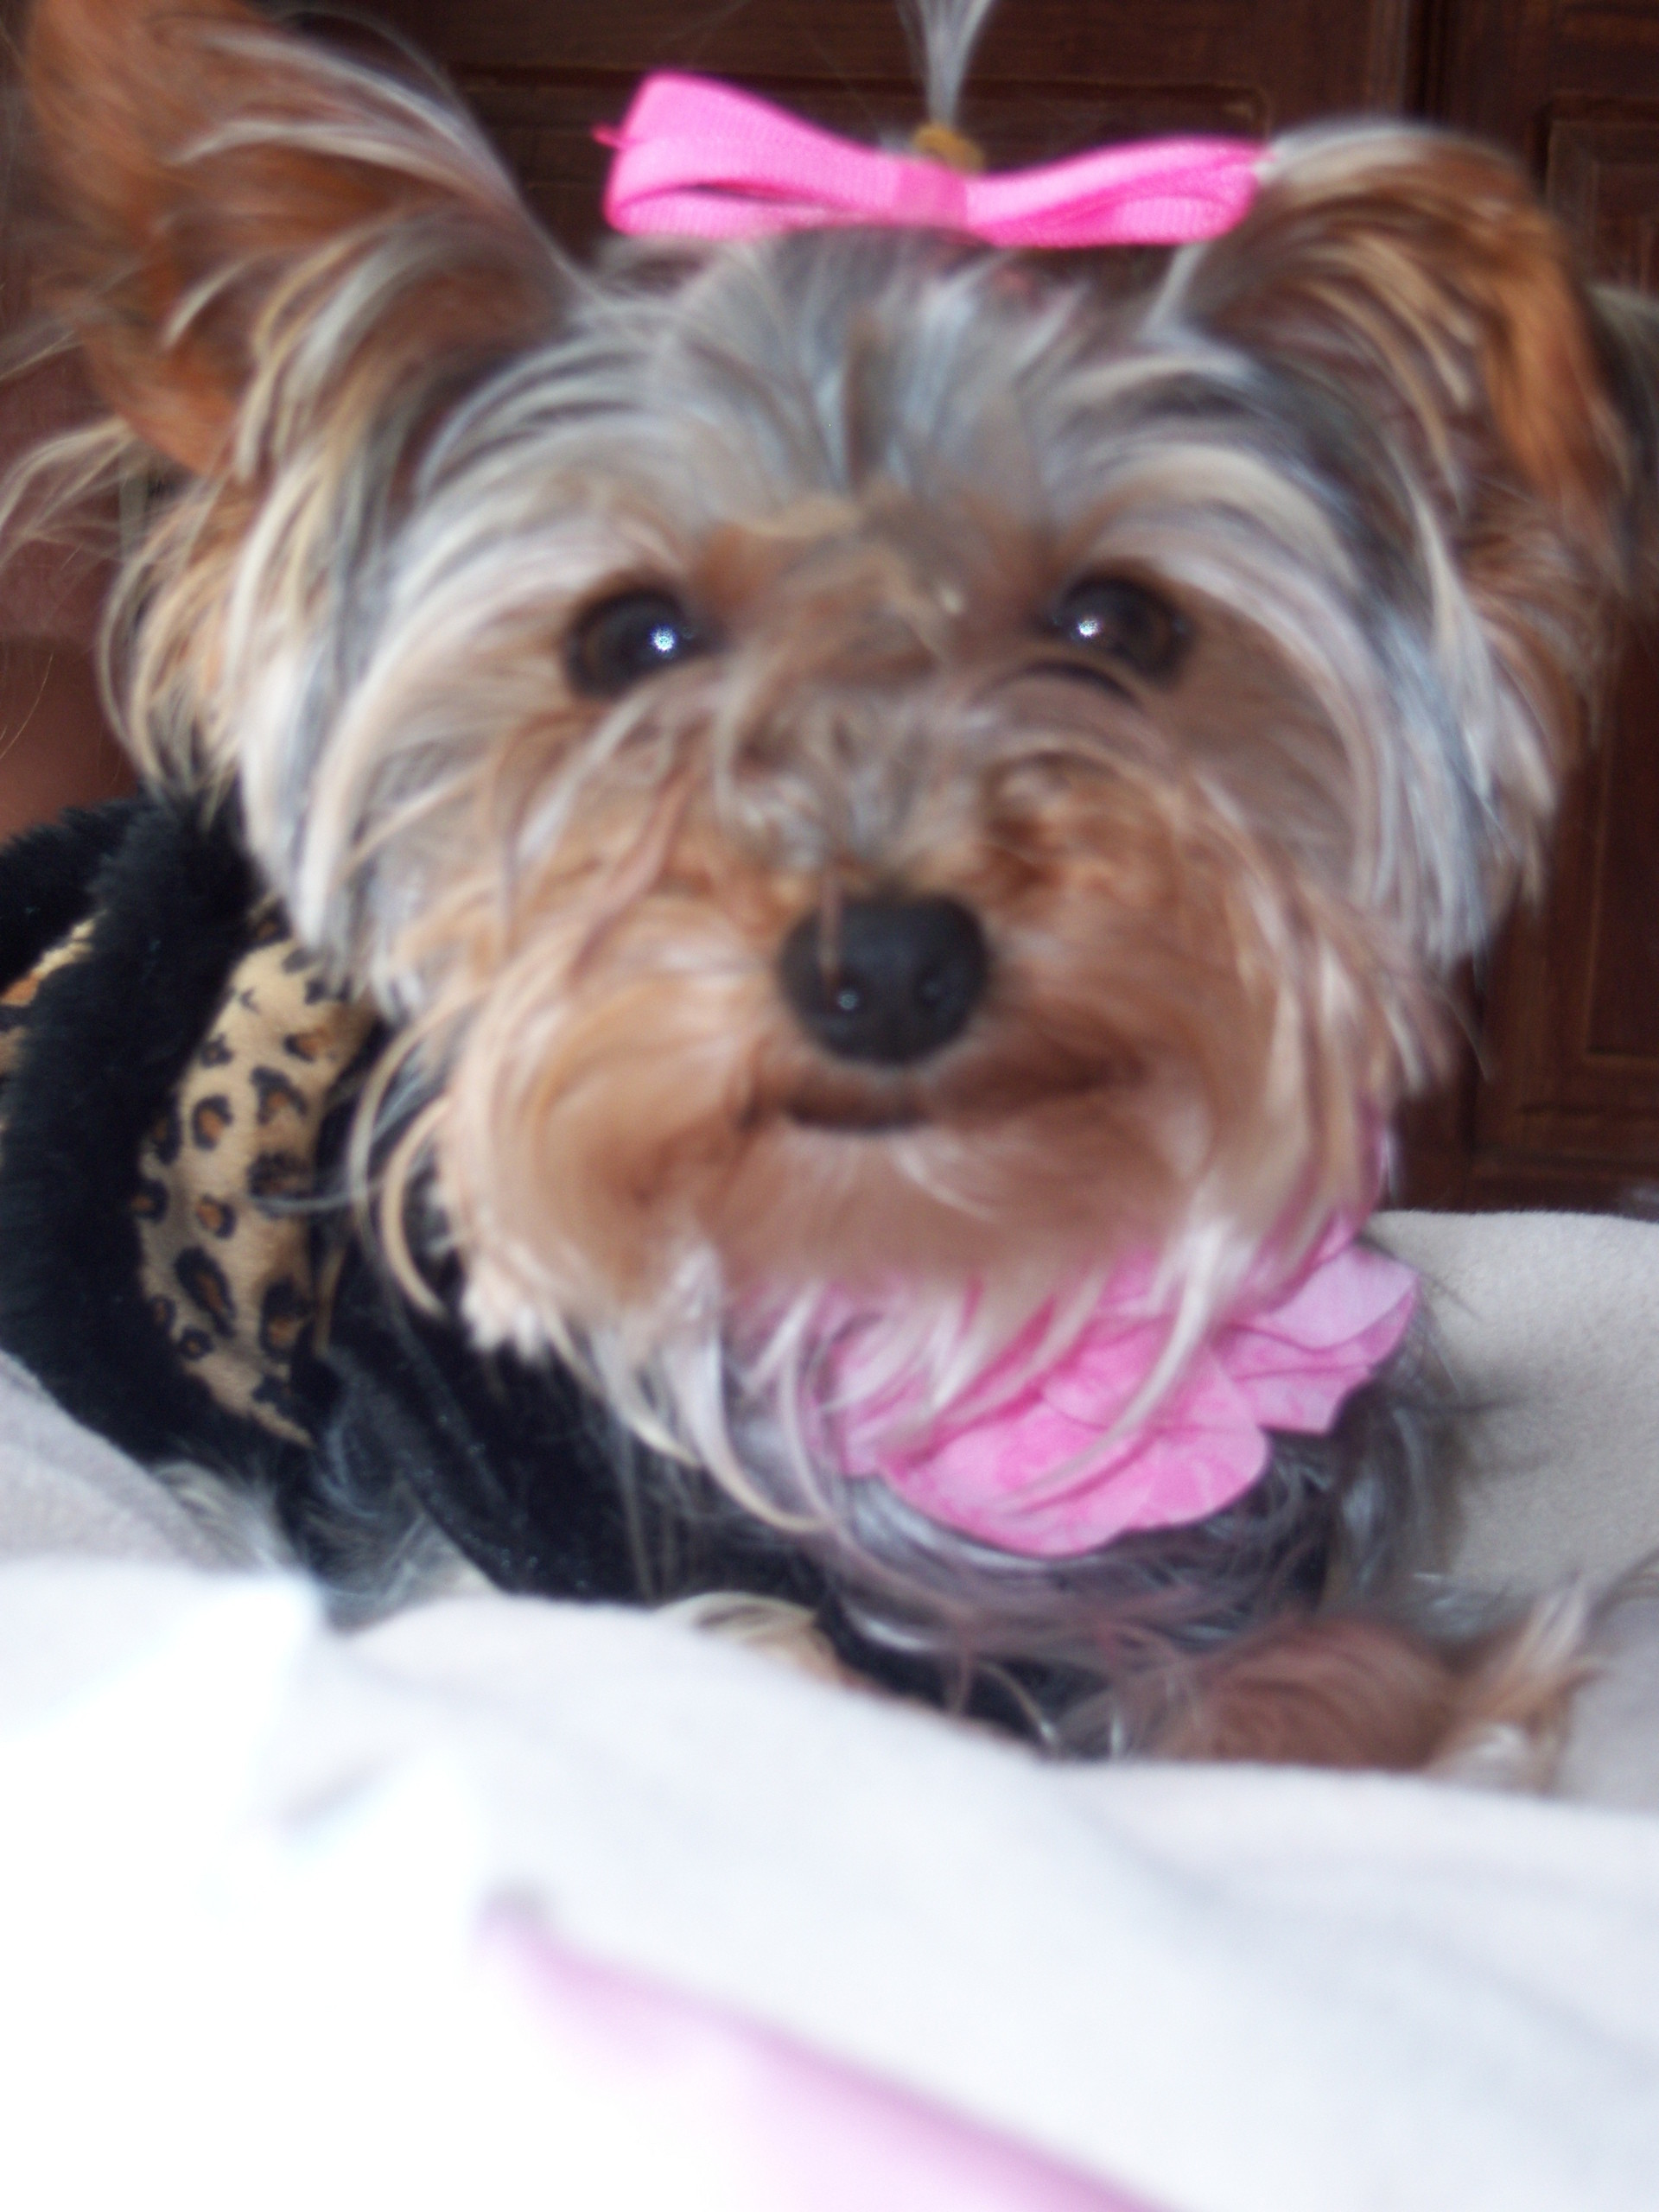 Yorkies images Lizzy Sue. My yorkie! HD wallpaper and background photos